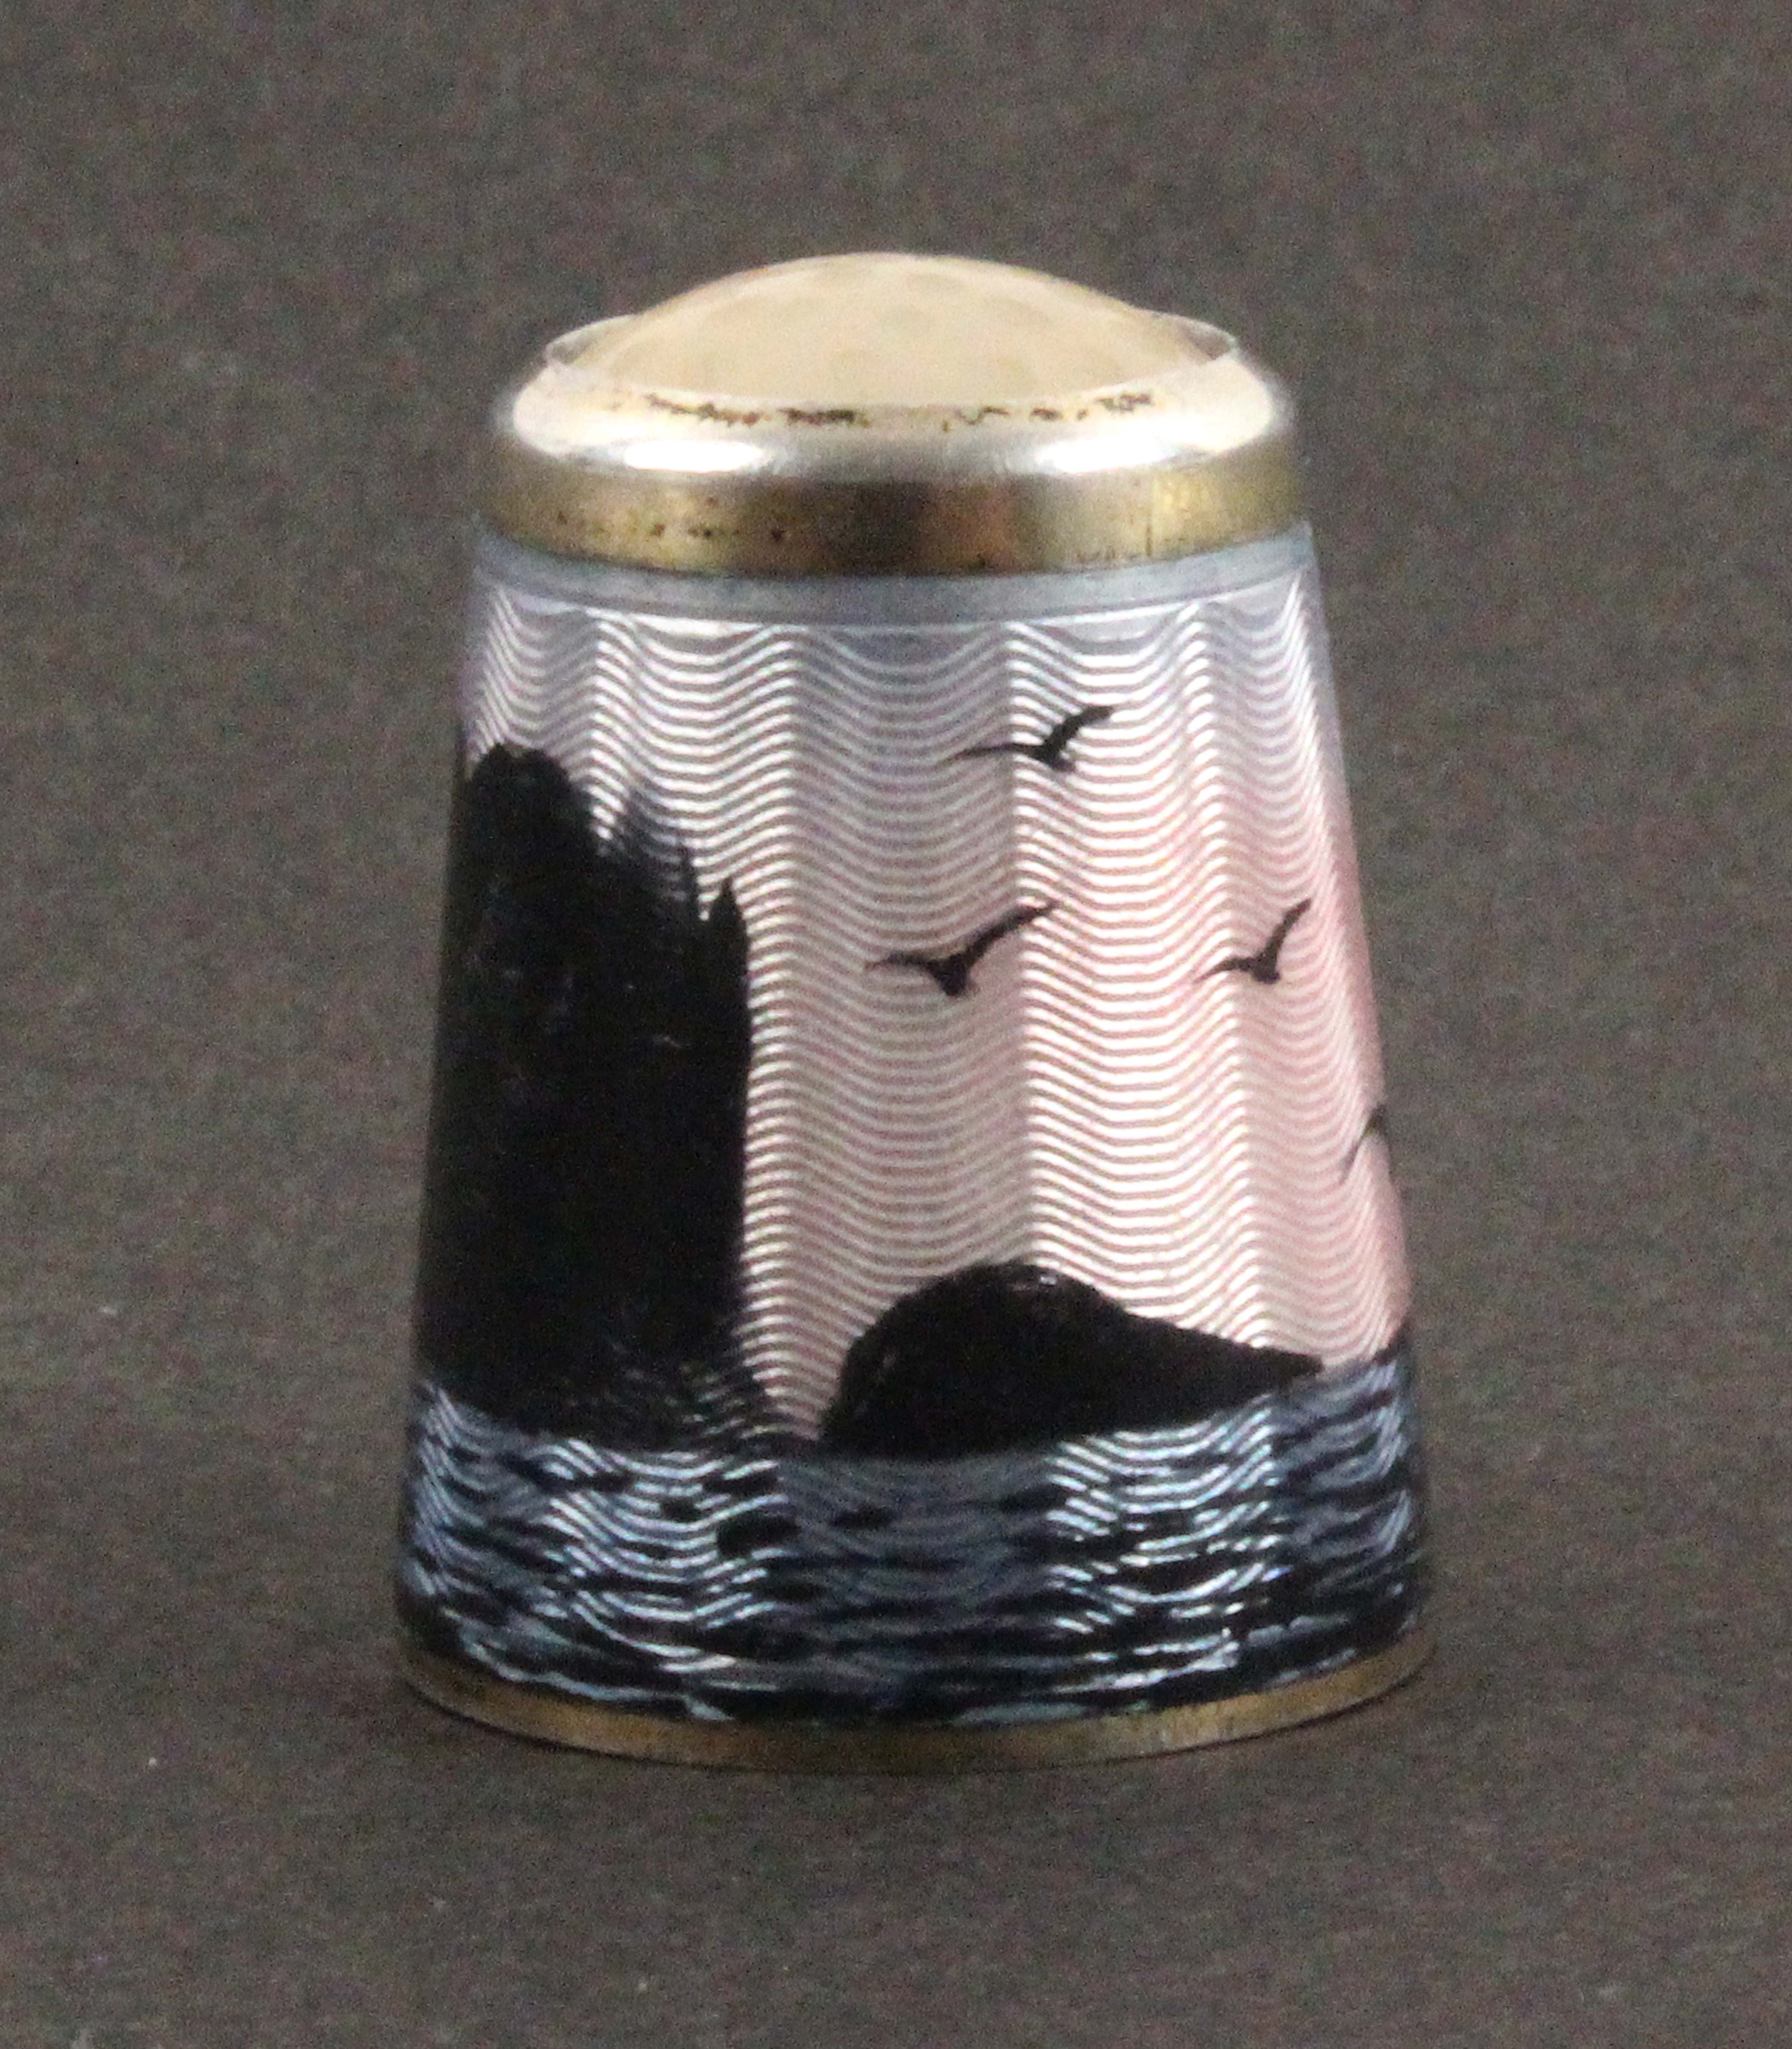 A Norwegian silver and enamel thimble, depicting North Cape with birds in flight over waves below - Image 2 of 2